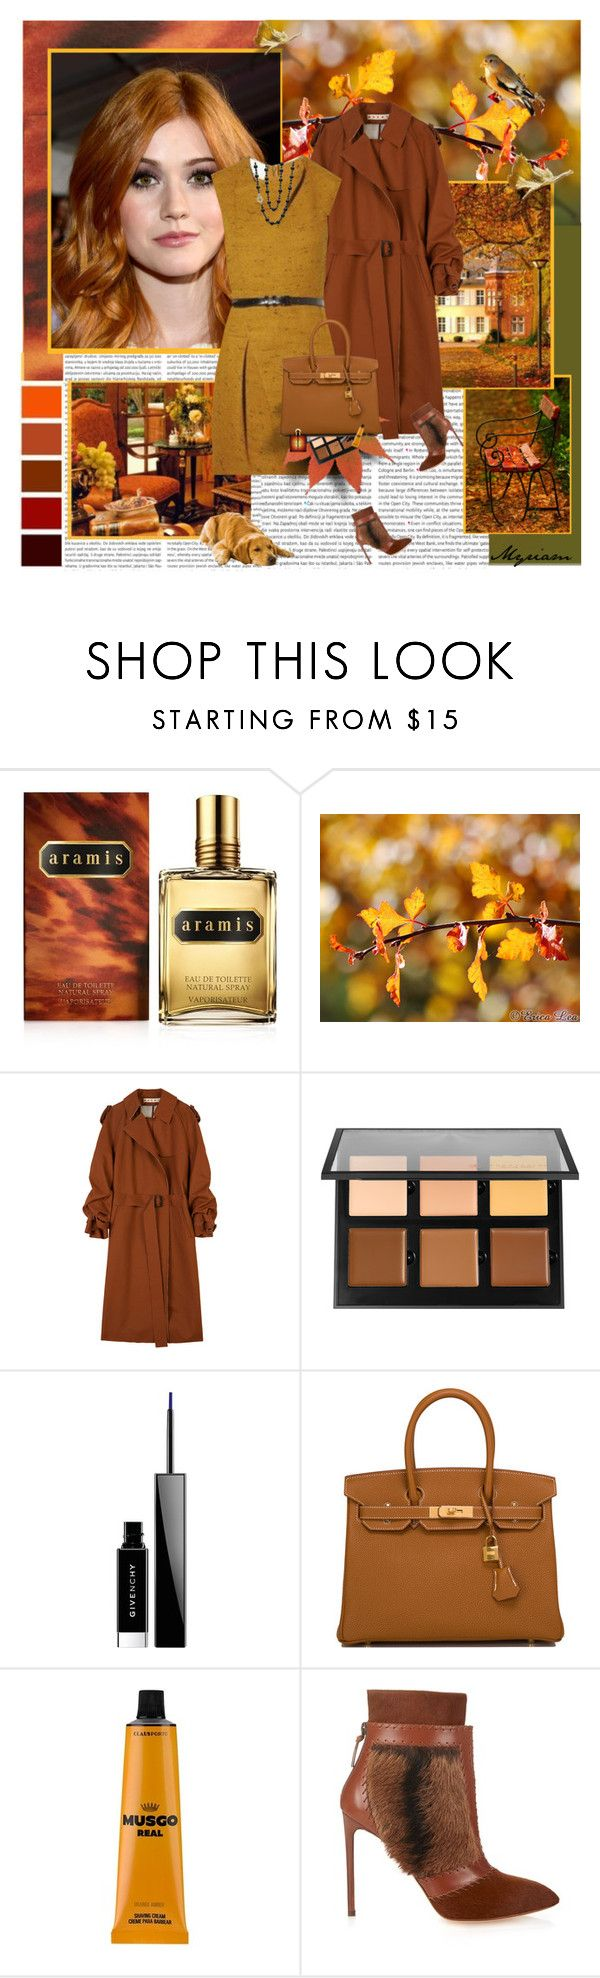 """Dressed in gold and Carmine. the autumn came :second spring"" by lovemeforthelife-myriam ❤ liked on Polyvore featuring Aramis, Oris, Marni, Anastasia Beverly Hills, Givenchy, Hermès, The Real Shaving Company, Francesco Russo, Yves Saint Laurent and Ivanka Trump"